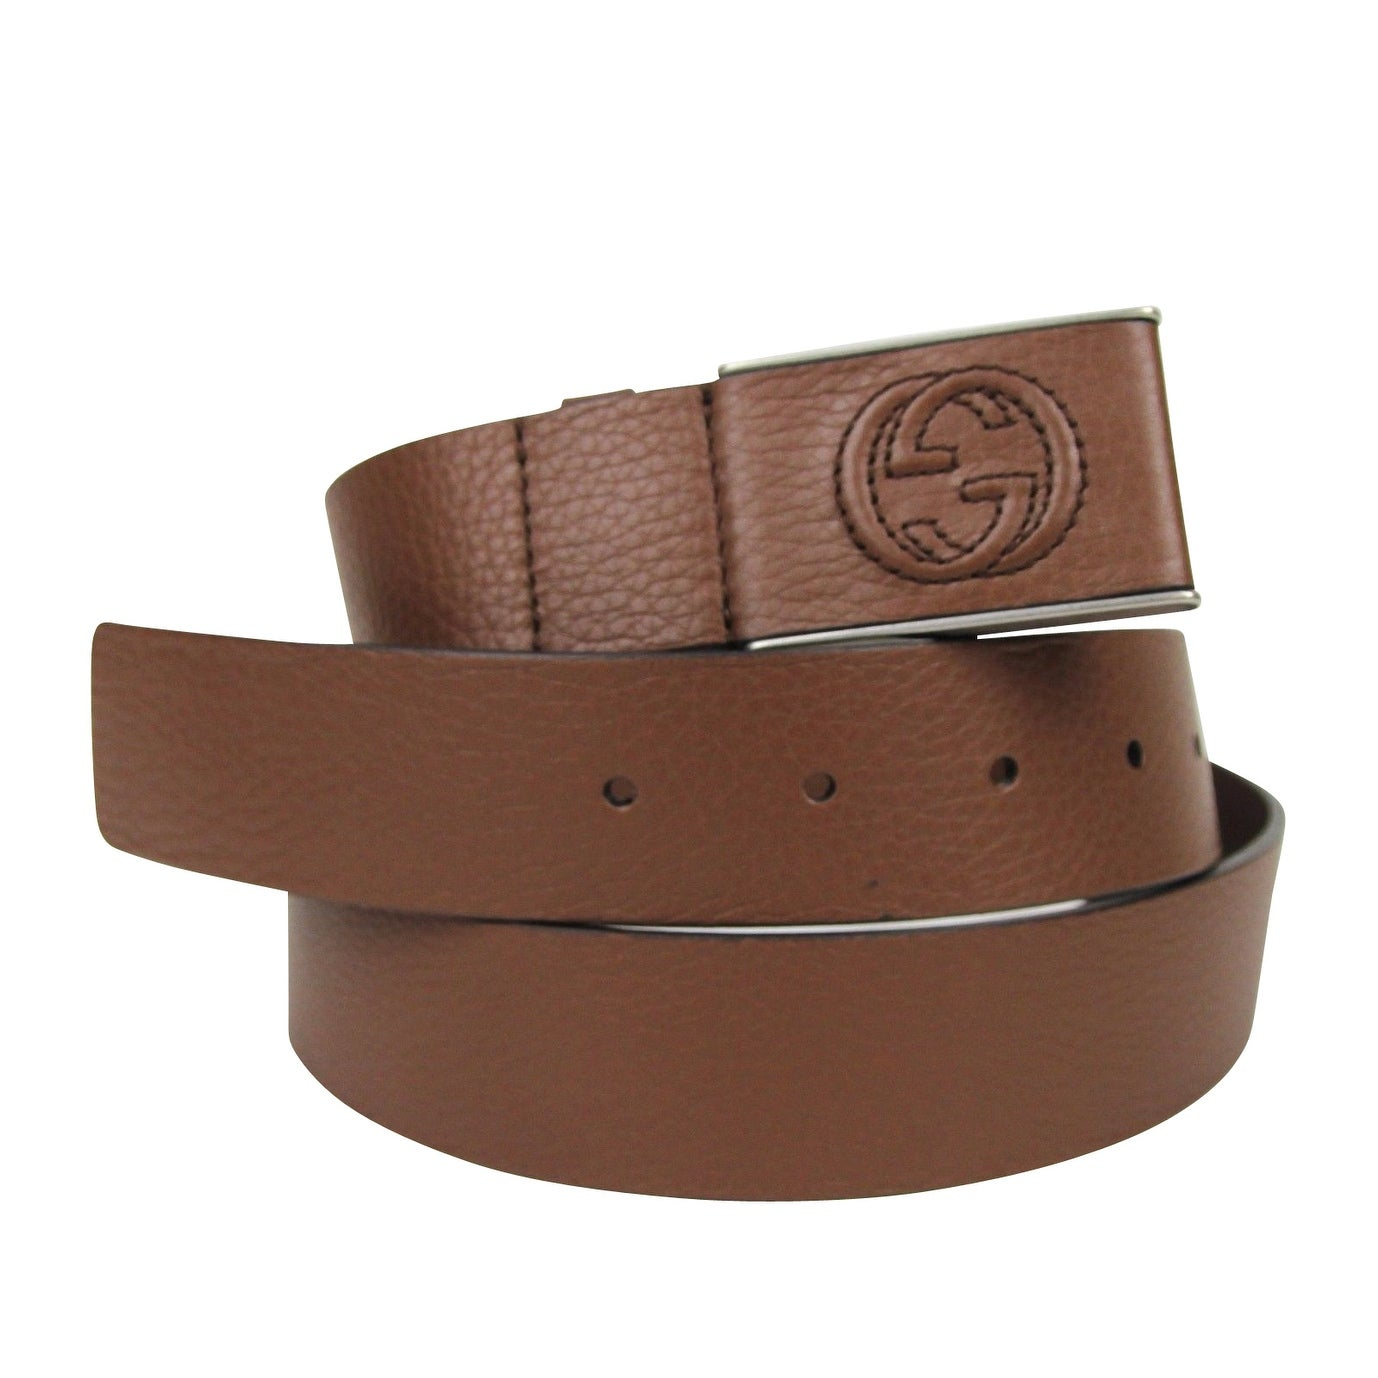 e603b572ff0 Shop Gucci Men s Square GG Brown Leather Belt Buckle 368188 2138 (95 38) -  95   38 - Free Shipping Today - Overstock - 25695028